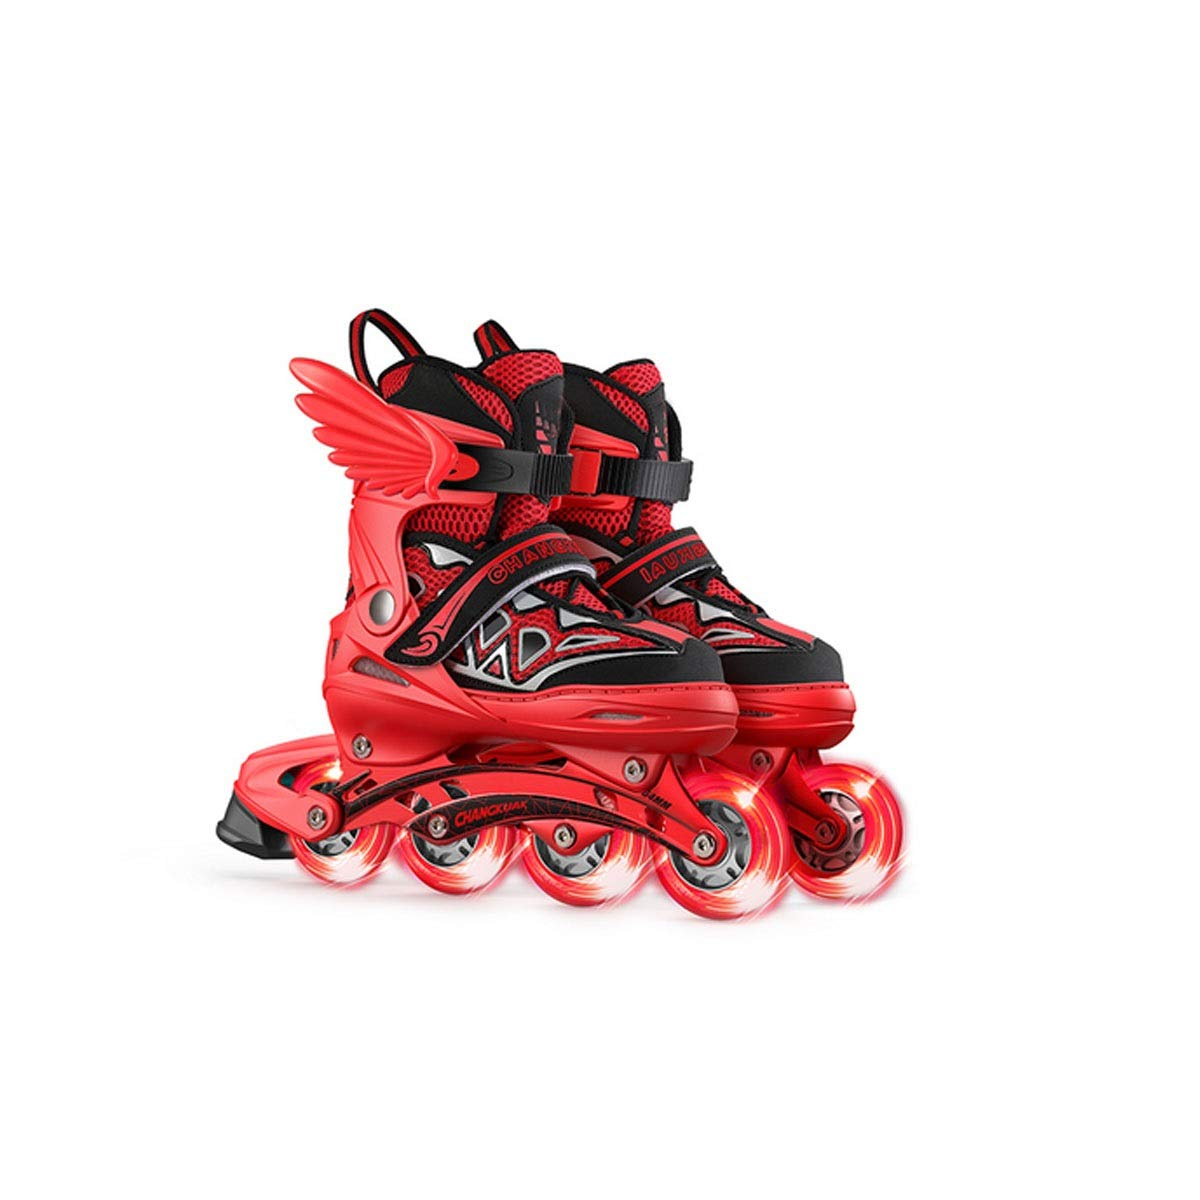 Hengxiang Fitness Inline Skates, Kid's Outdoor Skates, Four Wheels Adjustable Size, Pearl Liner Cotton, High Load Bearing Aluminum Bracket, PP Fiber Material Shoe Shell, Excellent Gift For 3 Years Old